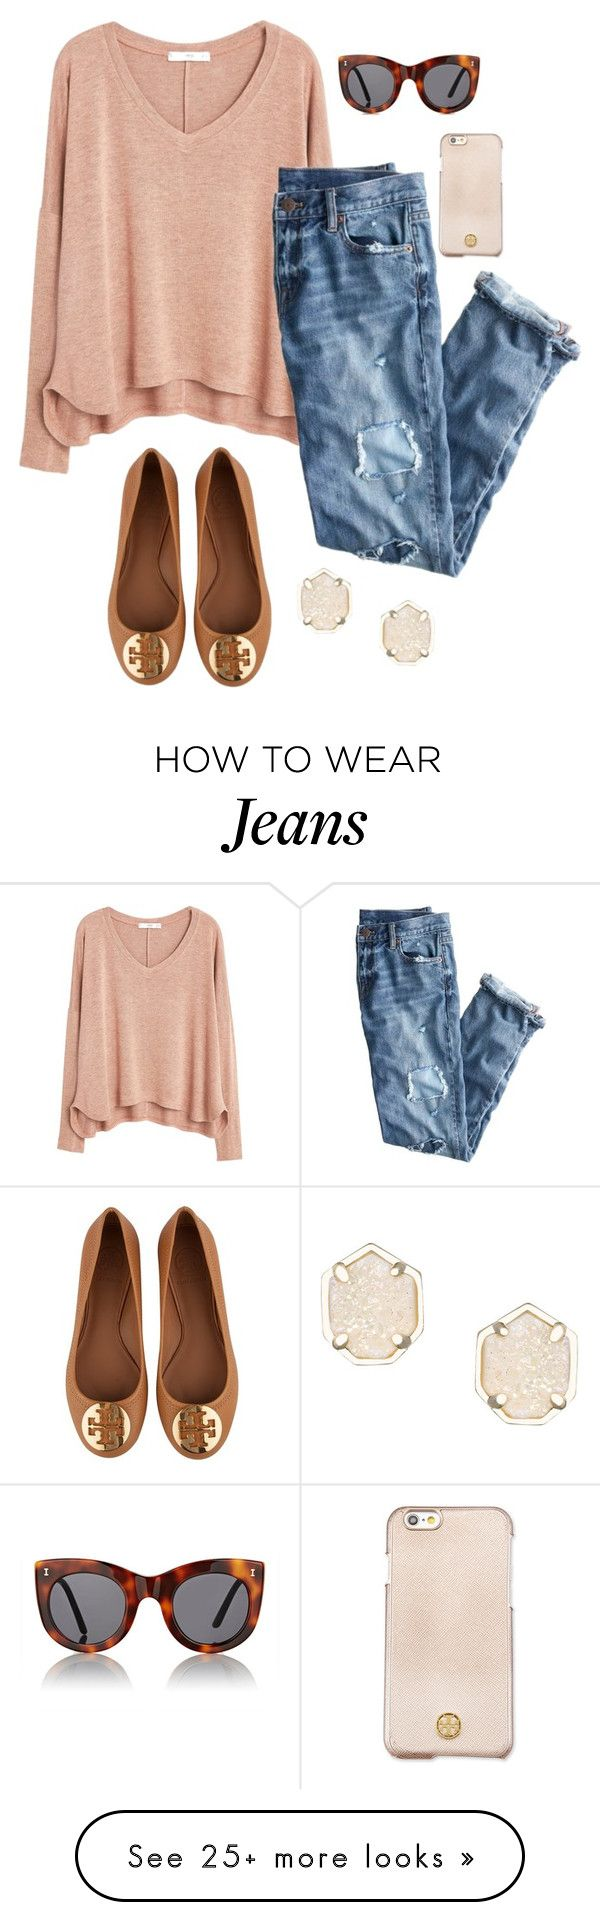 Blush and boyfriend jeans featuring MANGO, J.Crew, Illesteva, Tory Burch  and Kendra Scott